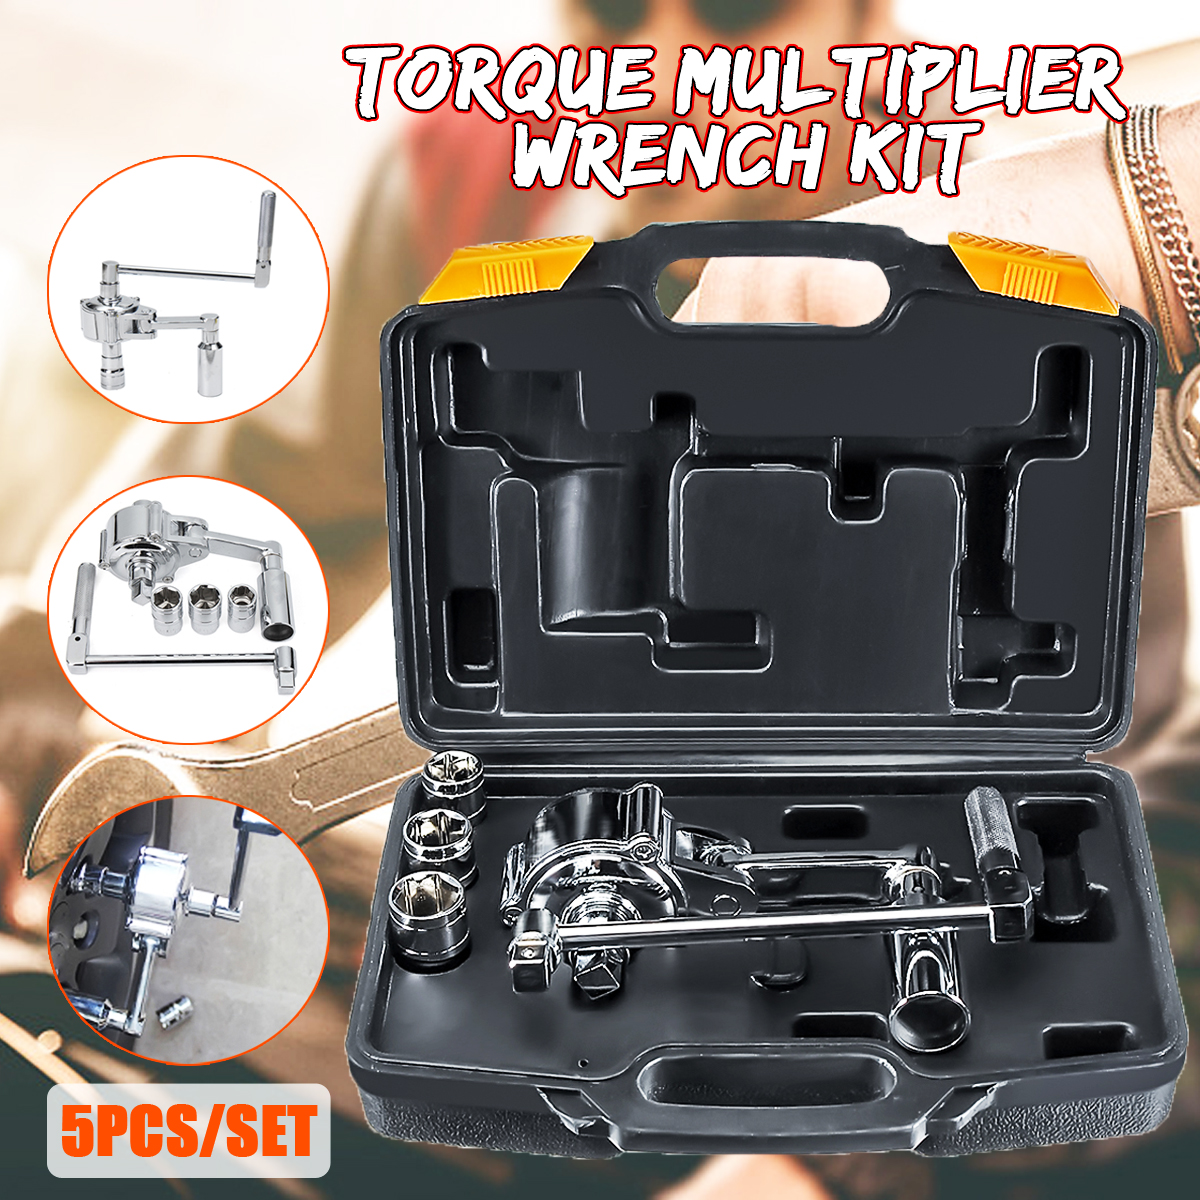 Torque Multiplier Wrench Lug Nut Remover 1/2 Drive Socket 17 <font><b>19</b></font> 21mm <font><b>Tire</b></font> Change image